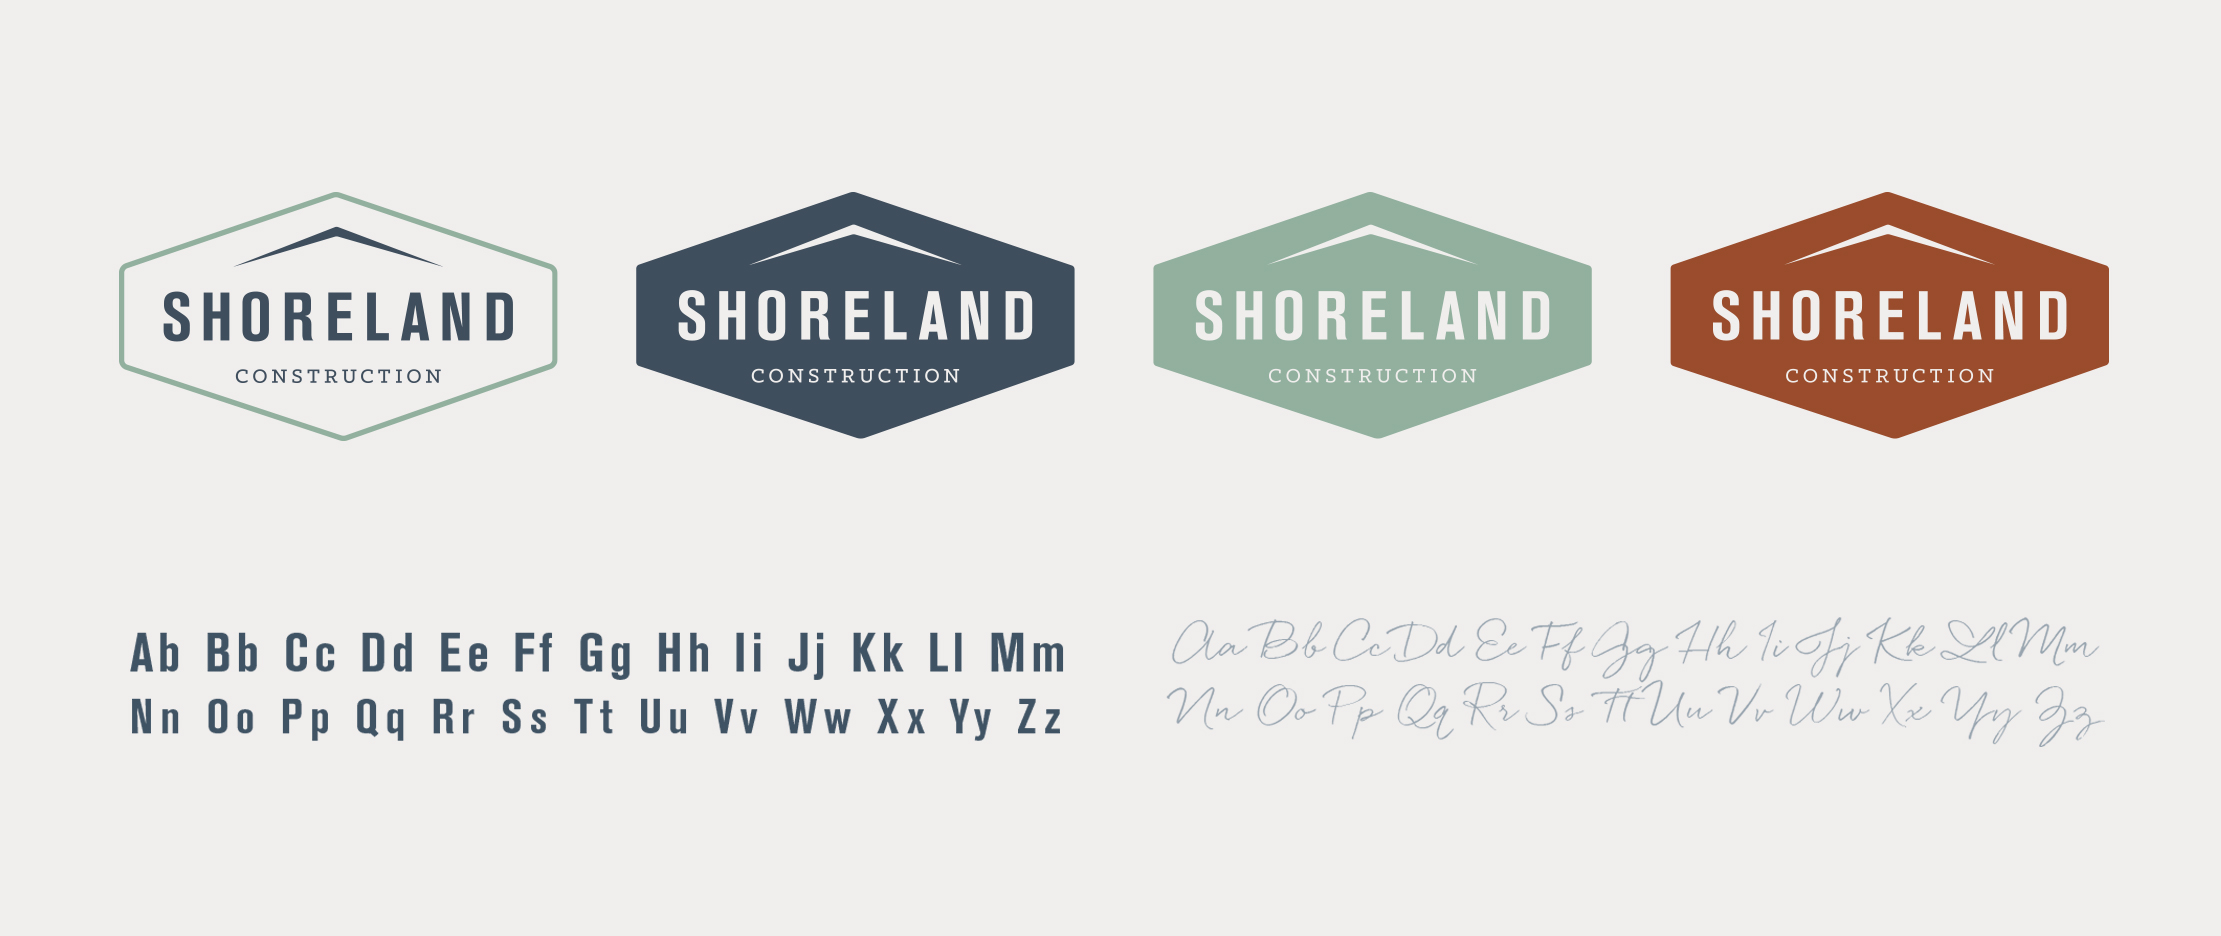 Shoreland Construction Brand Badges Designed by Just Make Things